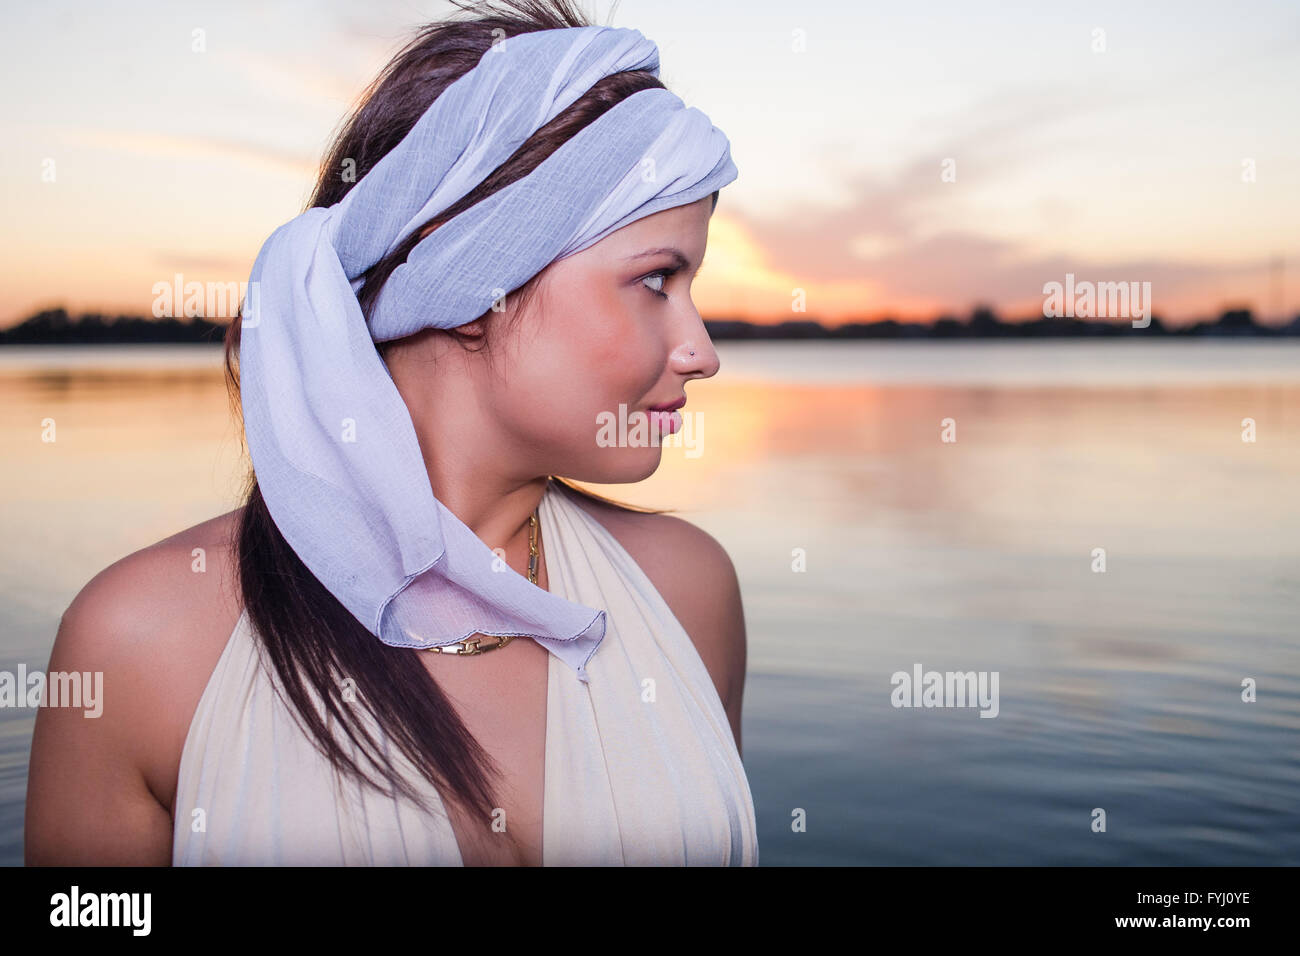 Beautiful young woman summertime portrait retro lifestyle.  Profile view - Stock Image